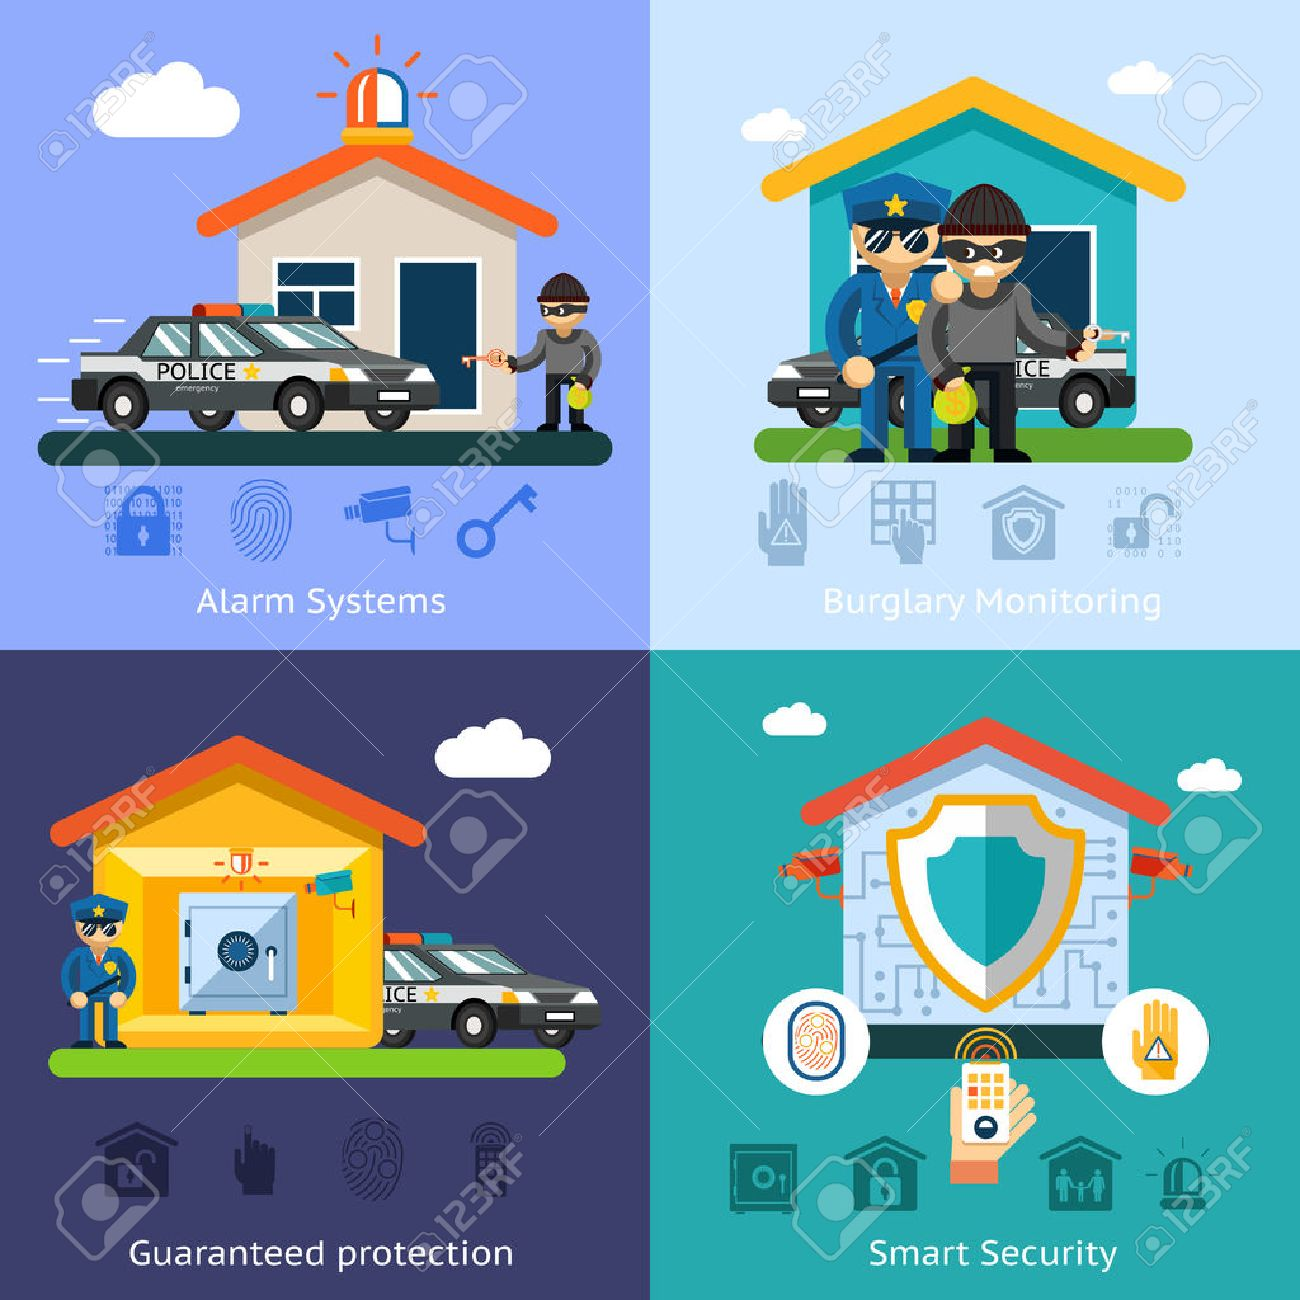 Home Security System Flat Vector Background Concepts. House Design  Technology, Symbol Safety Control Protection